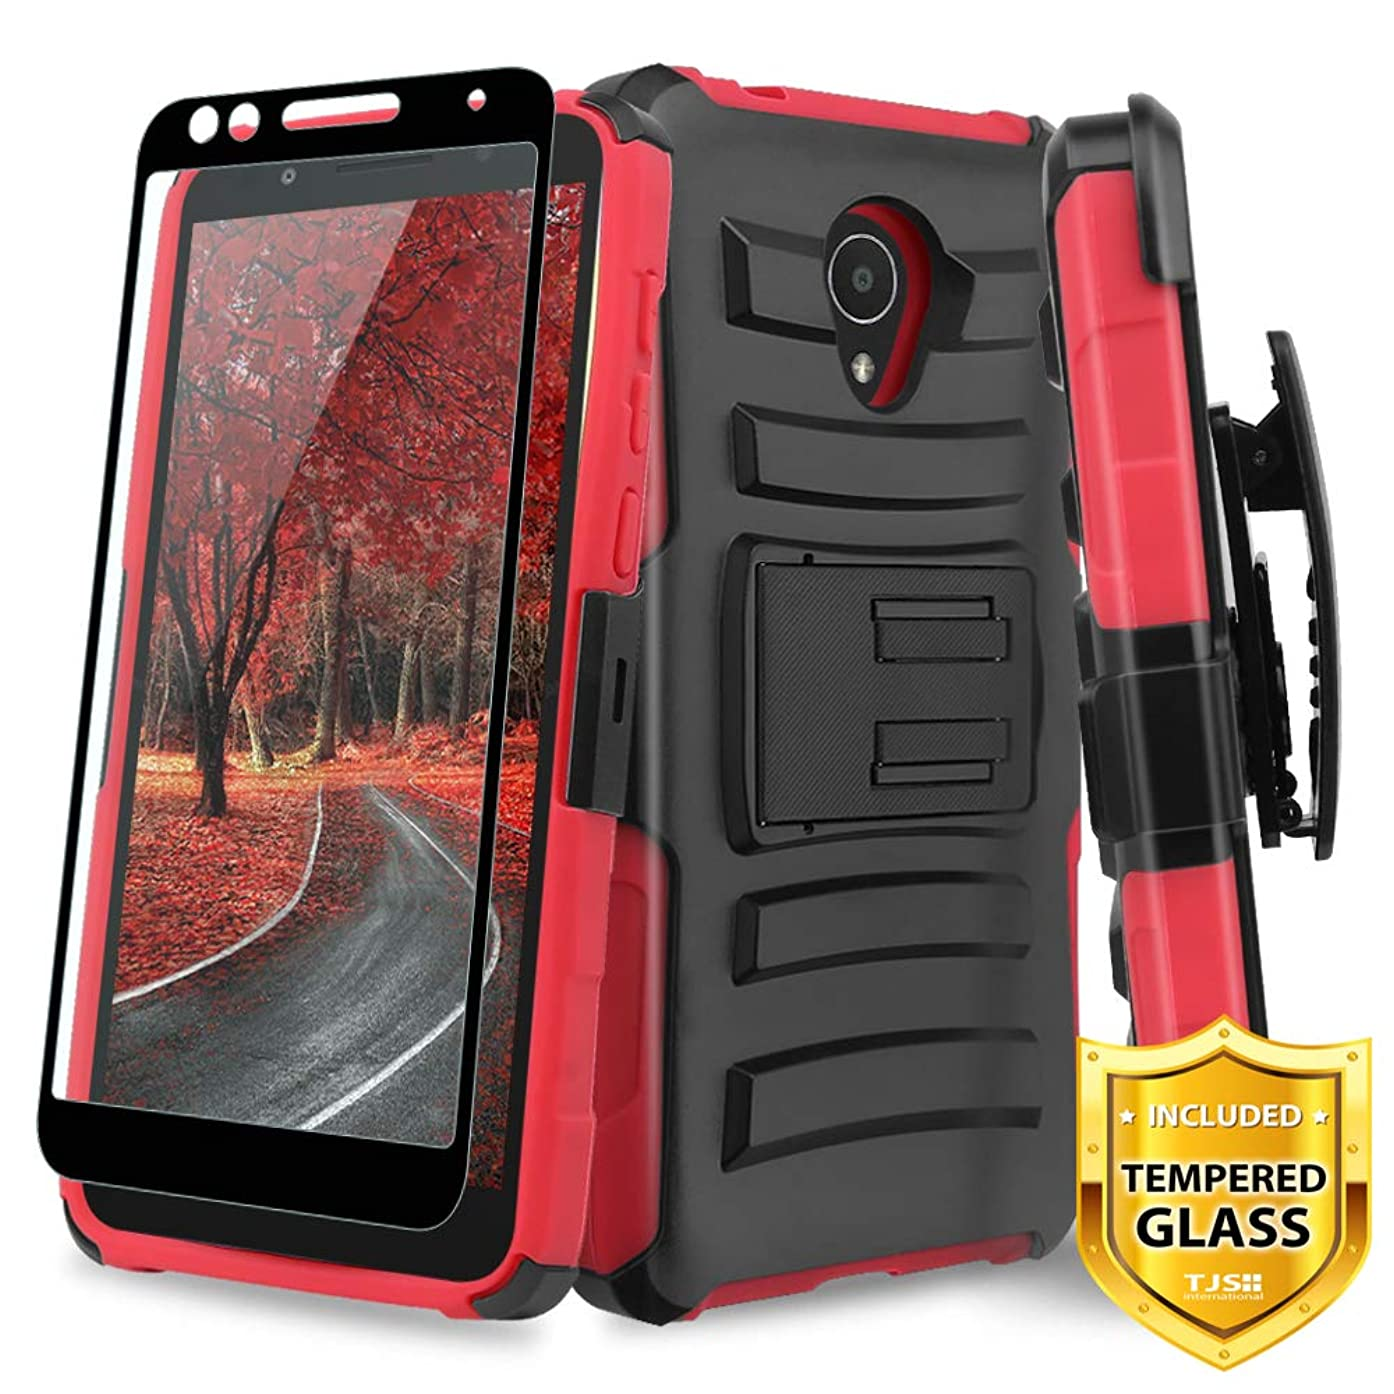 TJS Case for Alcatel Avalon V 5059S/Alcatel 1X Evolve/Alcatel IdealXtra 5059R/Alcatel TCL LX A502DL with [Full Coverage Tempered Glass Screen Protector] Belt Clip Holster Kickstand Phone Cover (Red)